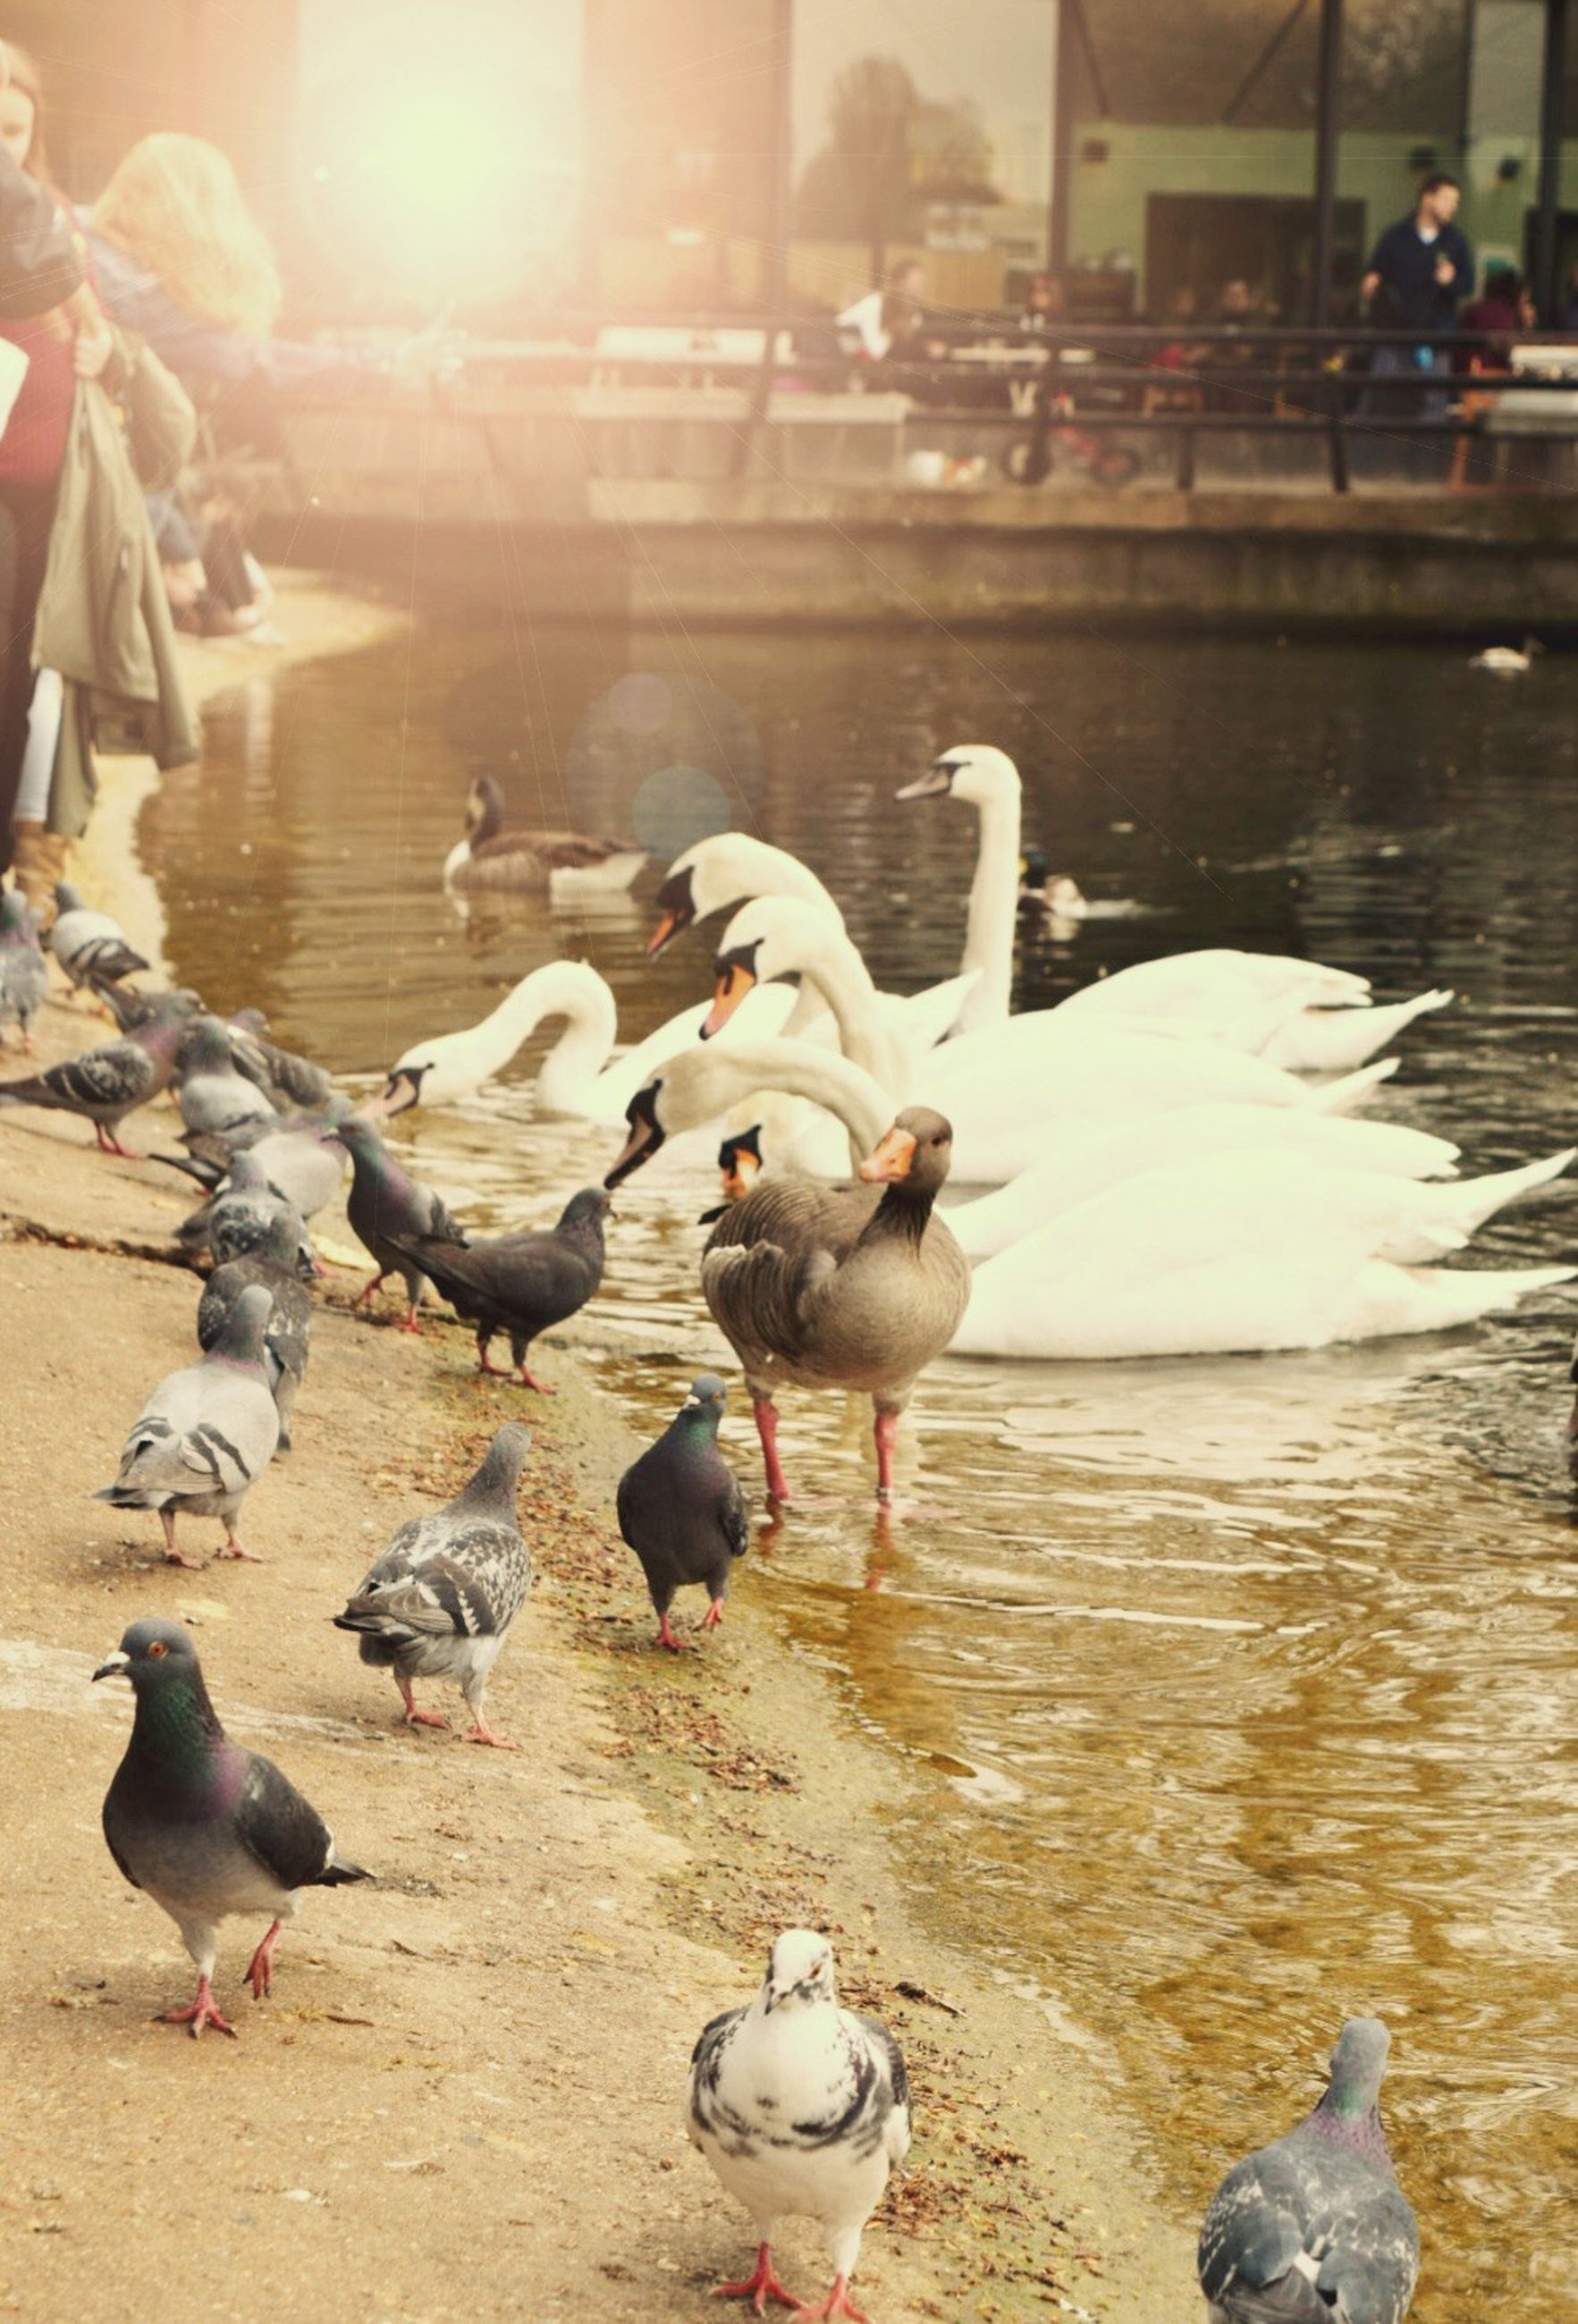 bird, animal themes, animals in the wild, wildlife, water, flock of birds, duck, seagull, nature, medium group of animals, pigeon, lake, shore, reflection, beach, outdoors, togetherness, sunlight, swan